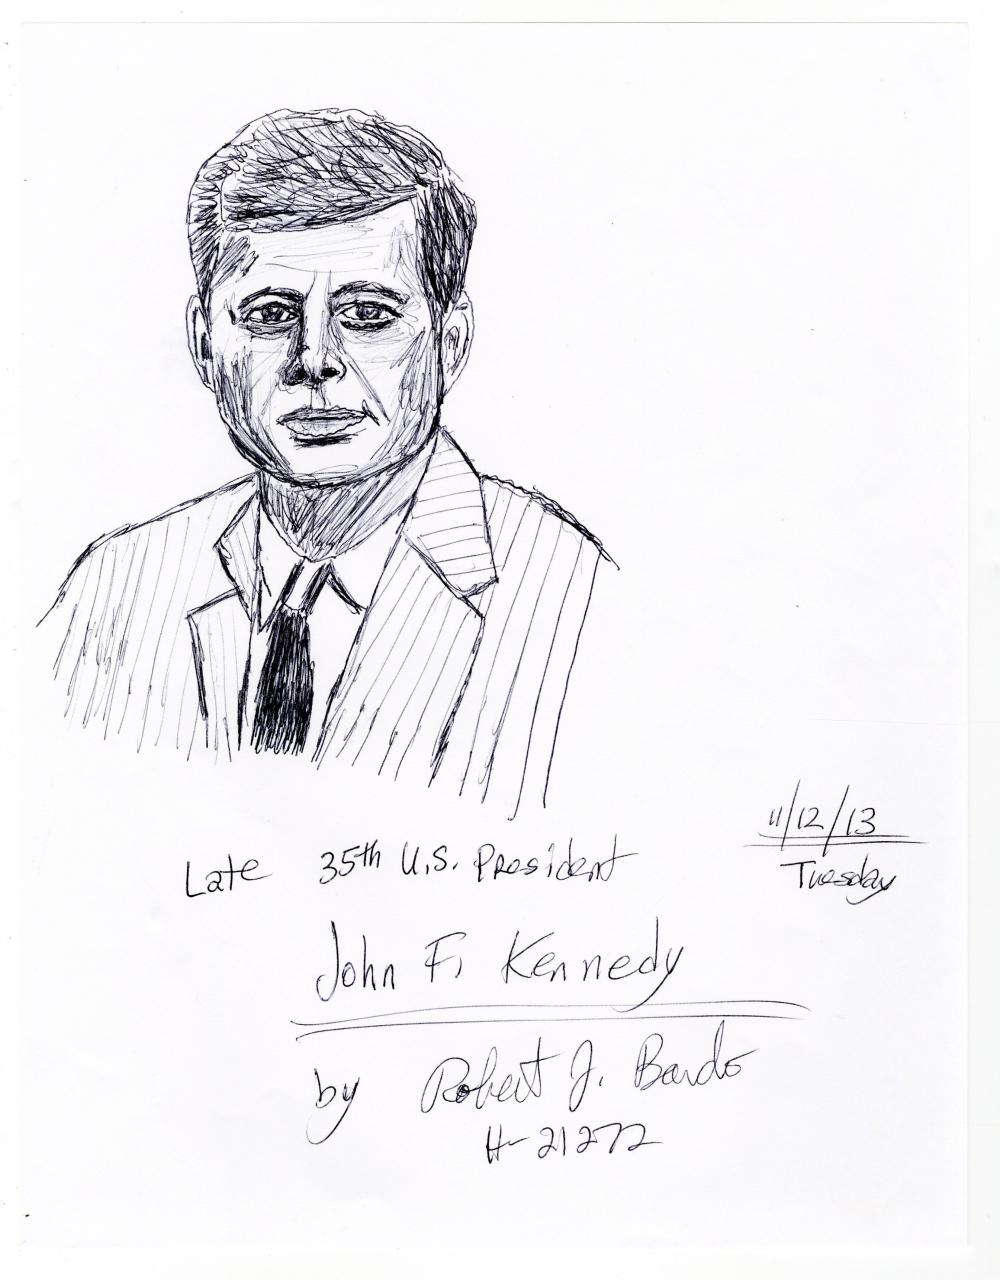 [JFK] Five Eerie Sketches of JFK, RFK, & Oswald Signed by Convict Bardo